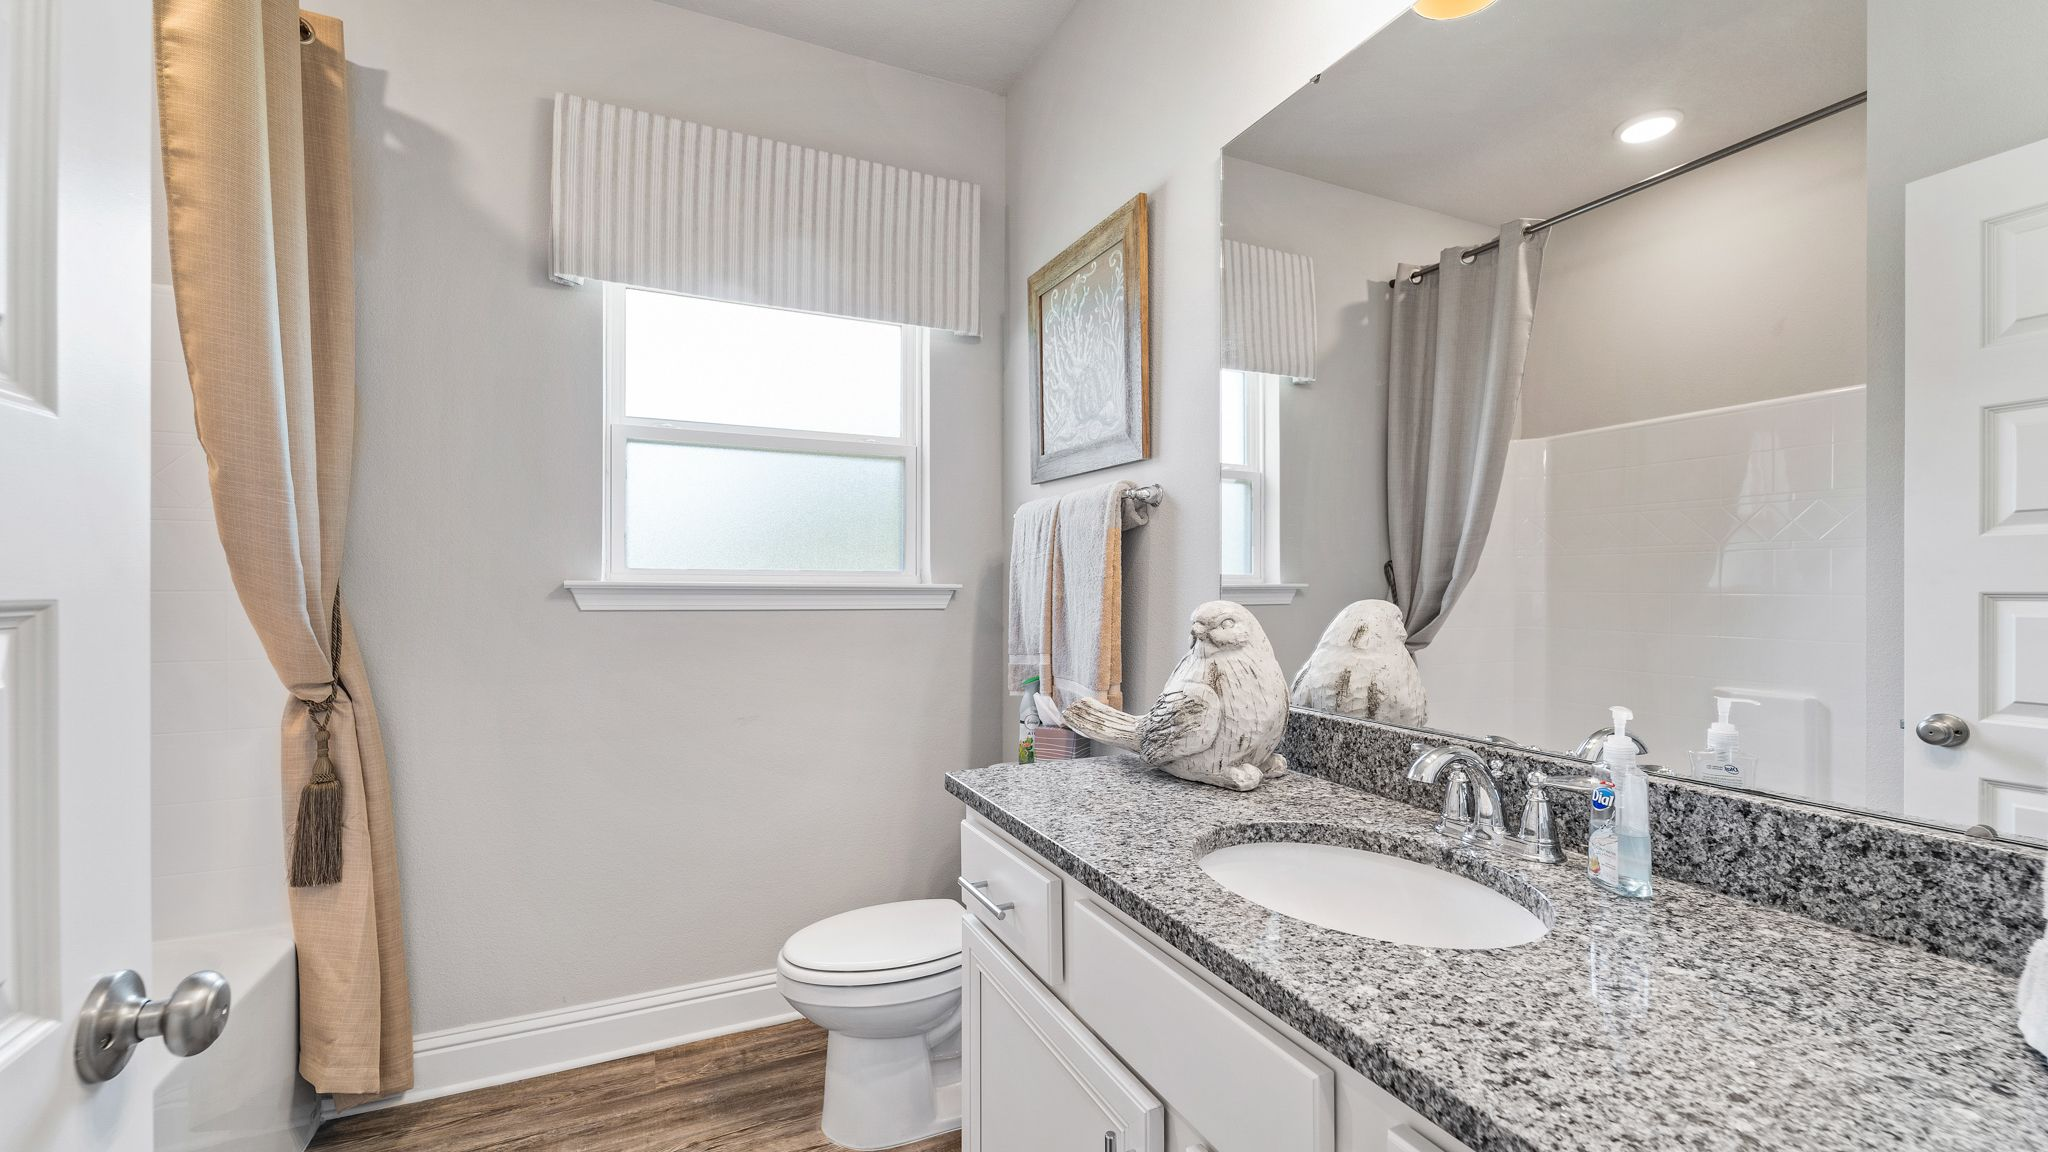 Bathroom featured in The Kingston By D.R. Horton in Mobile, AL